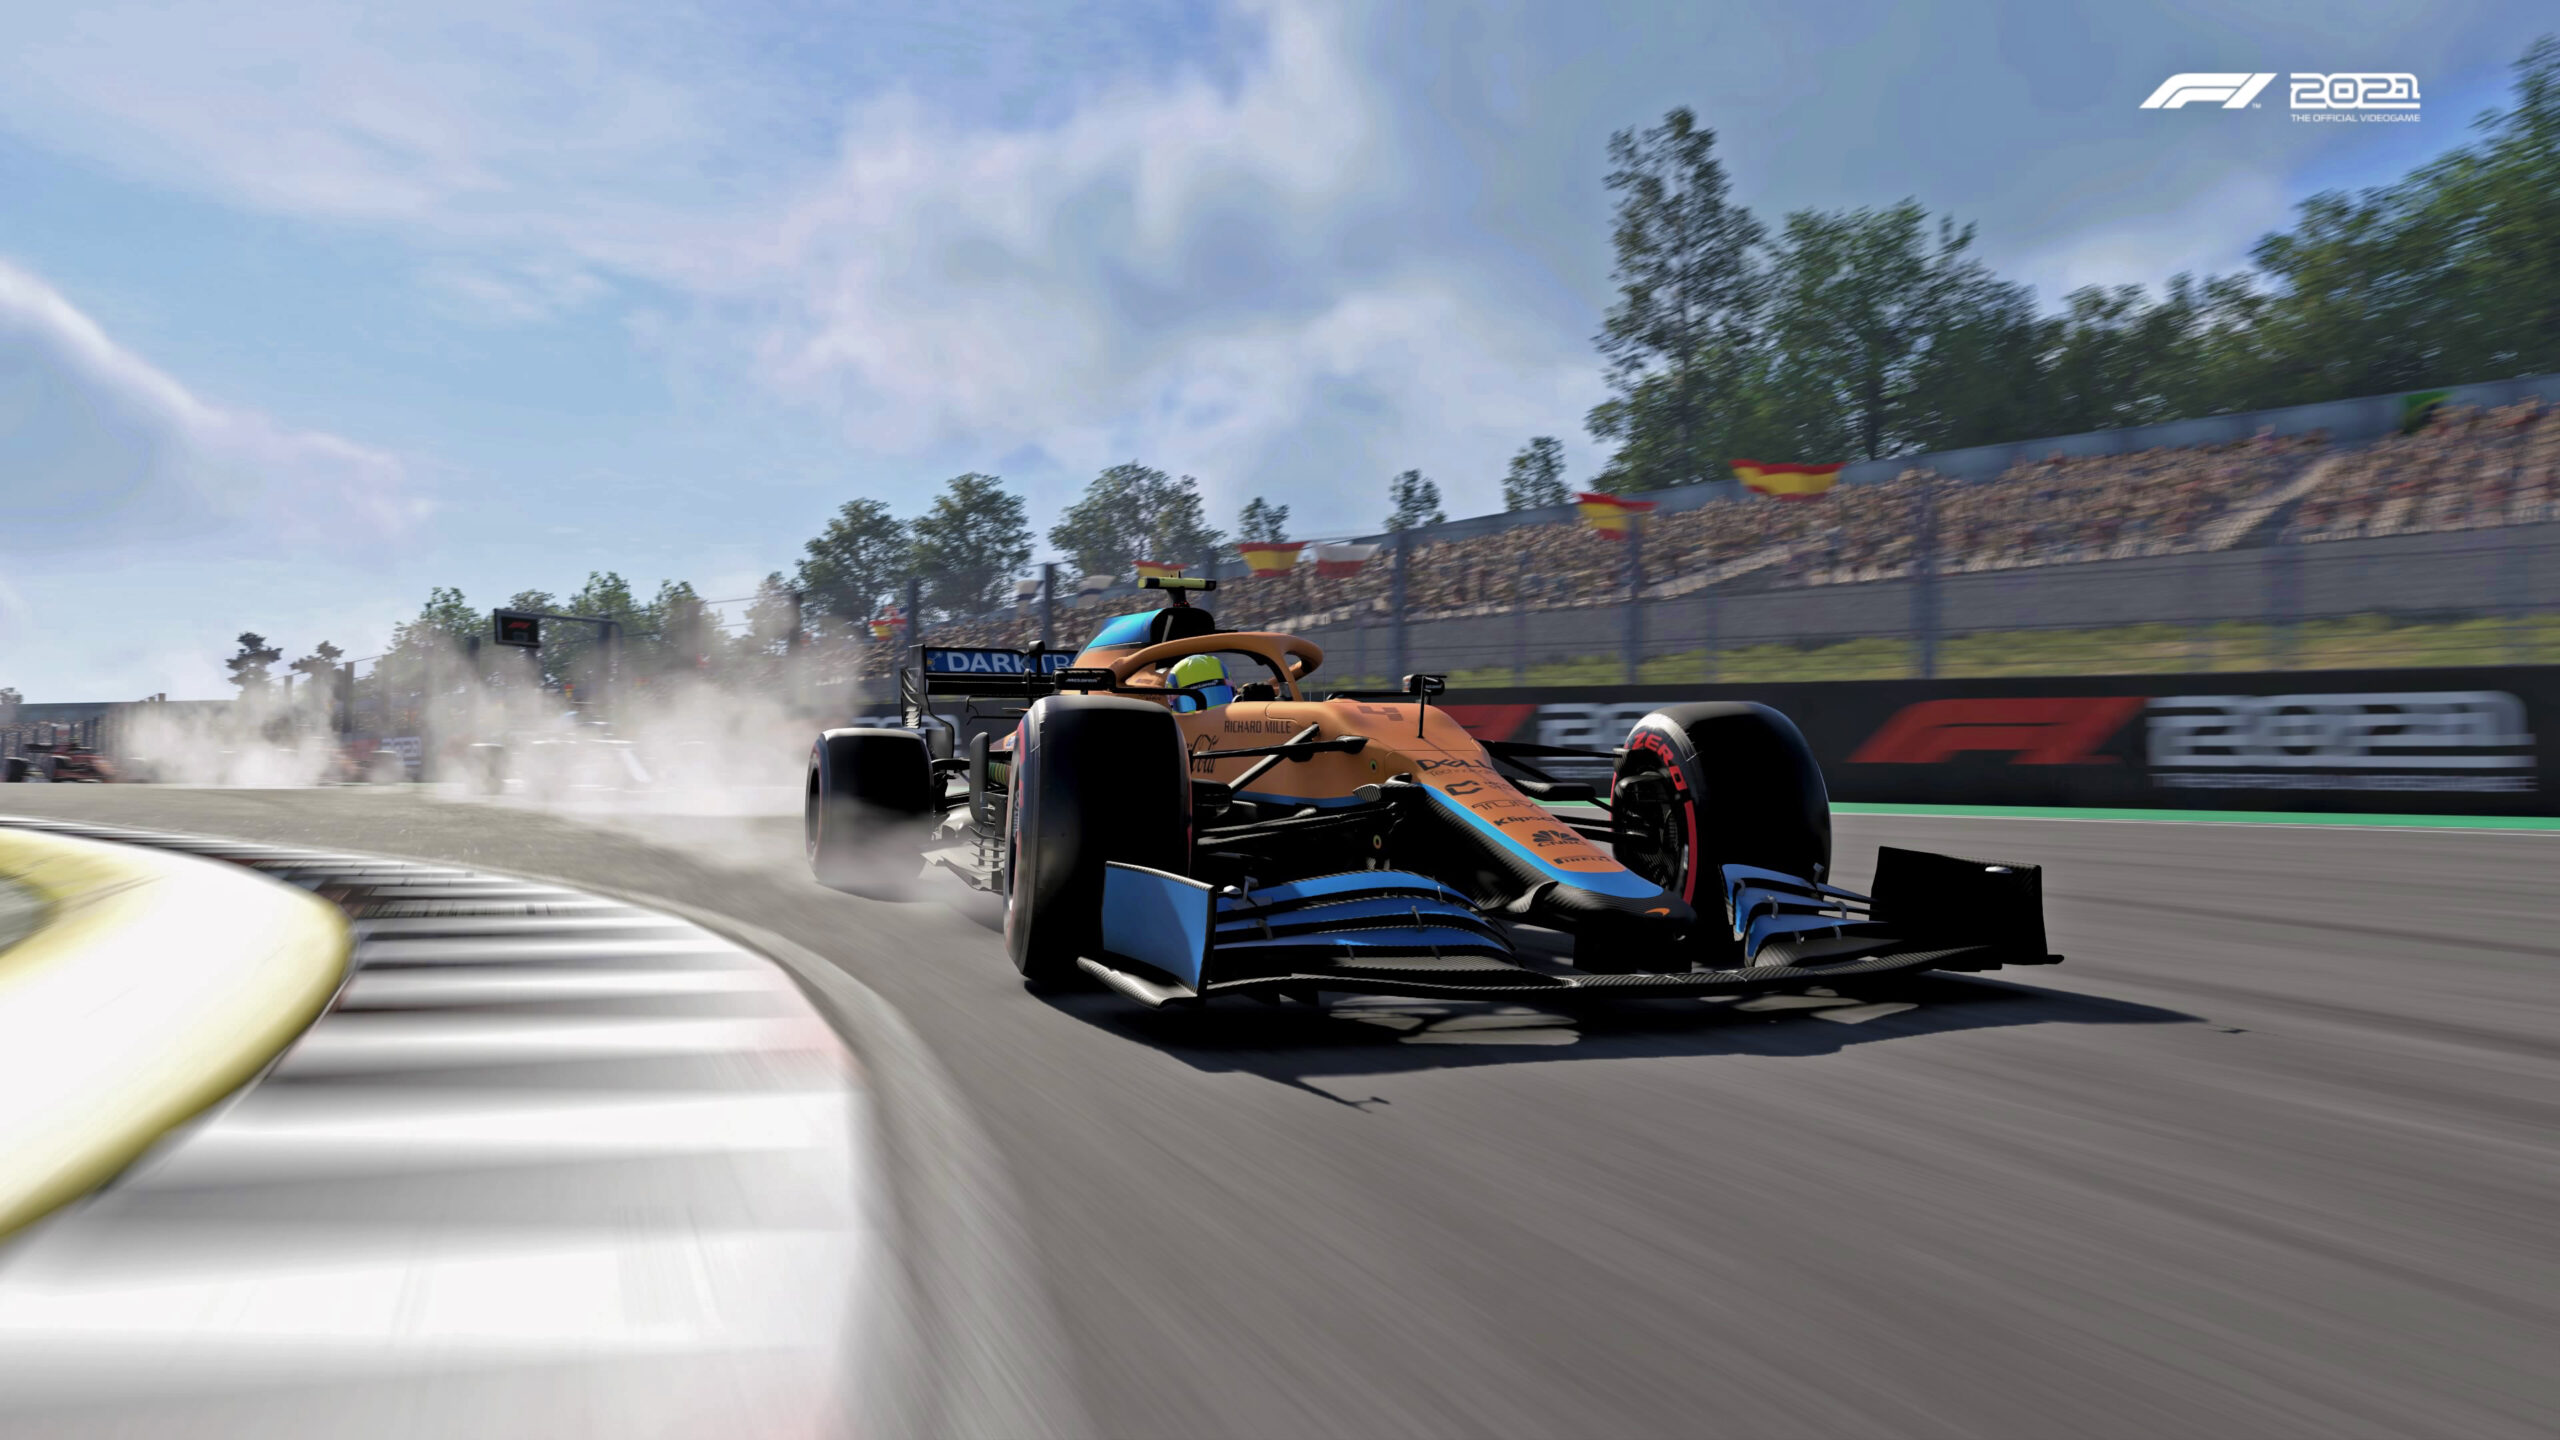 F1 2021 review - the best F1 game yet?